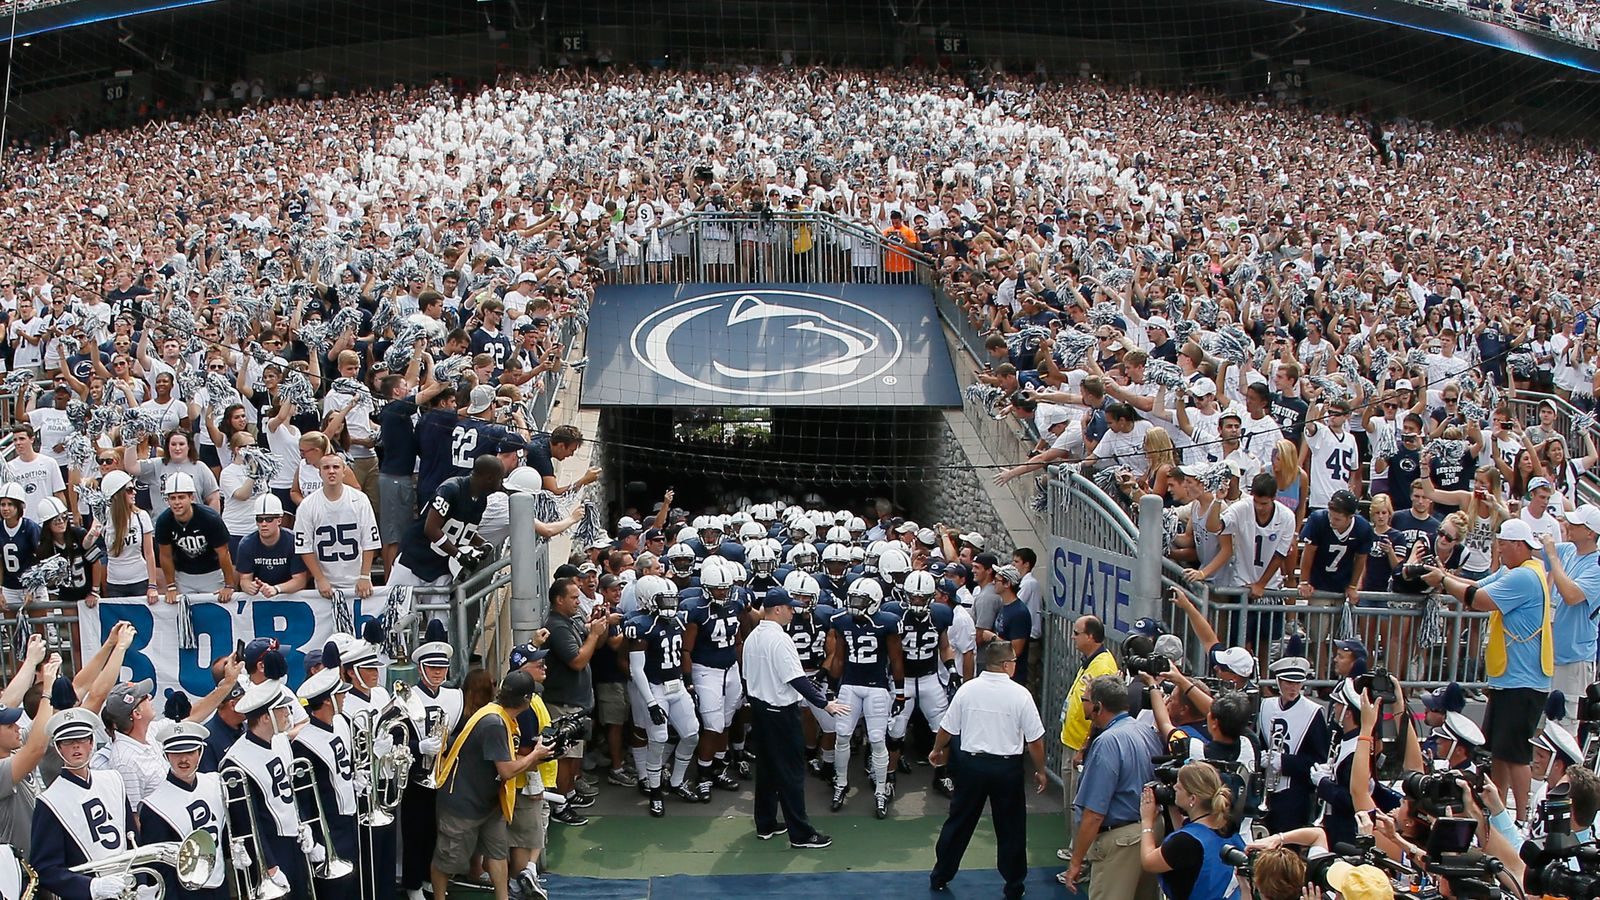 Penn State Hires Anthony Midget As New Defensive Backs